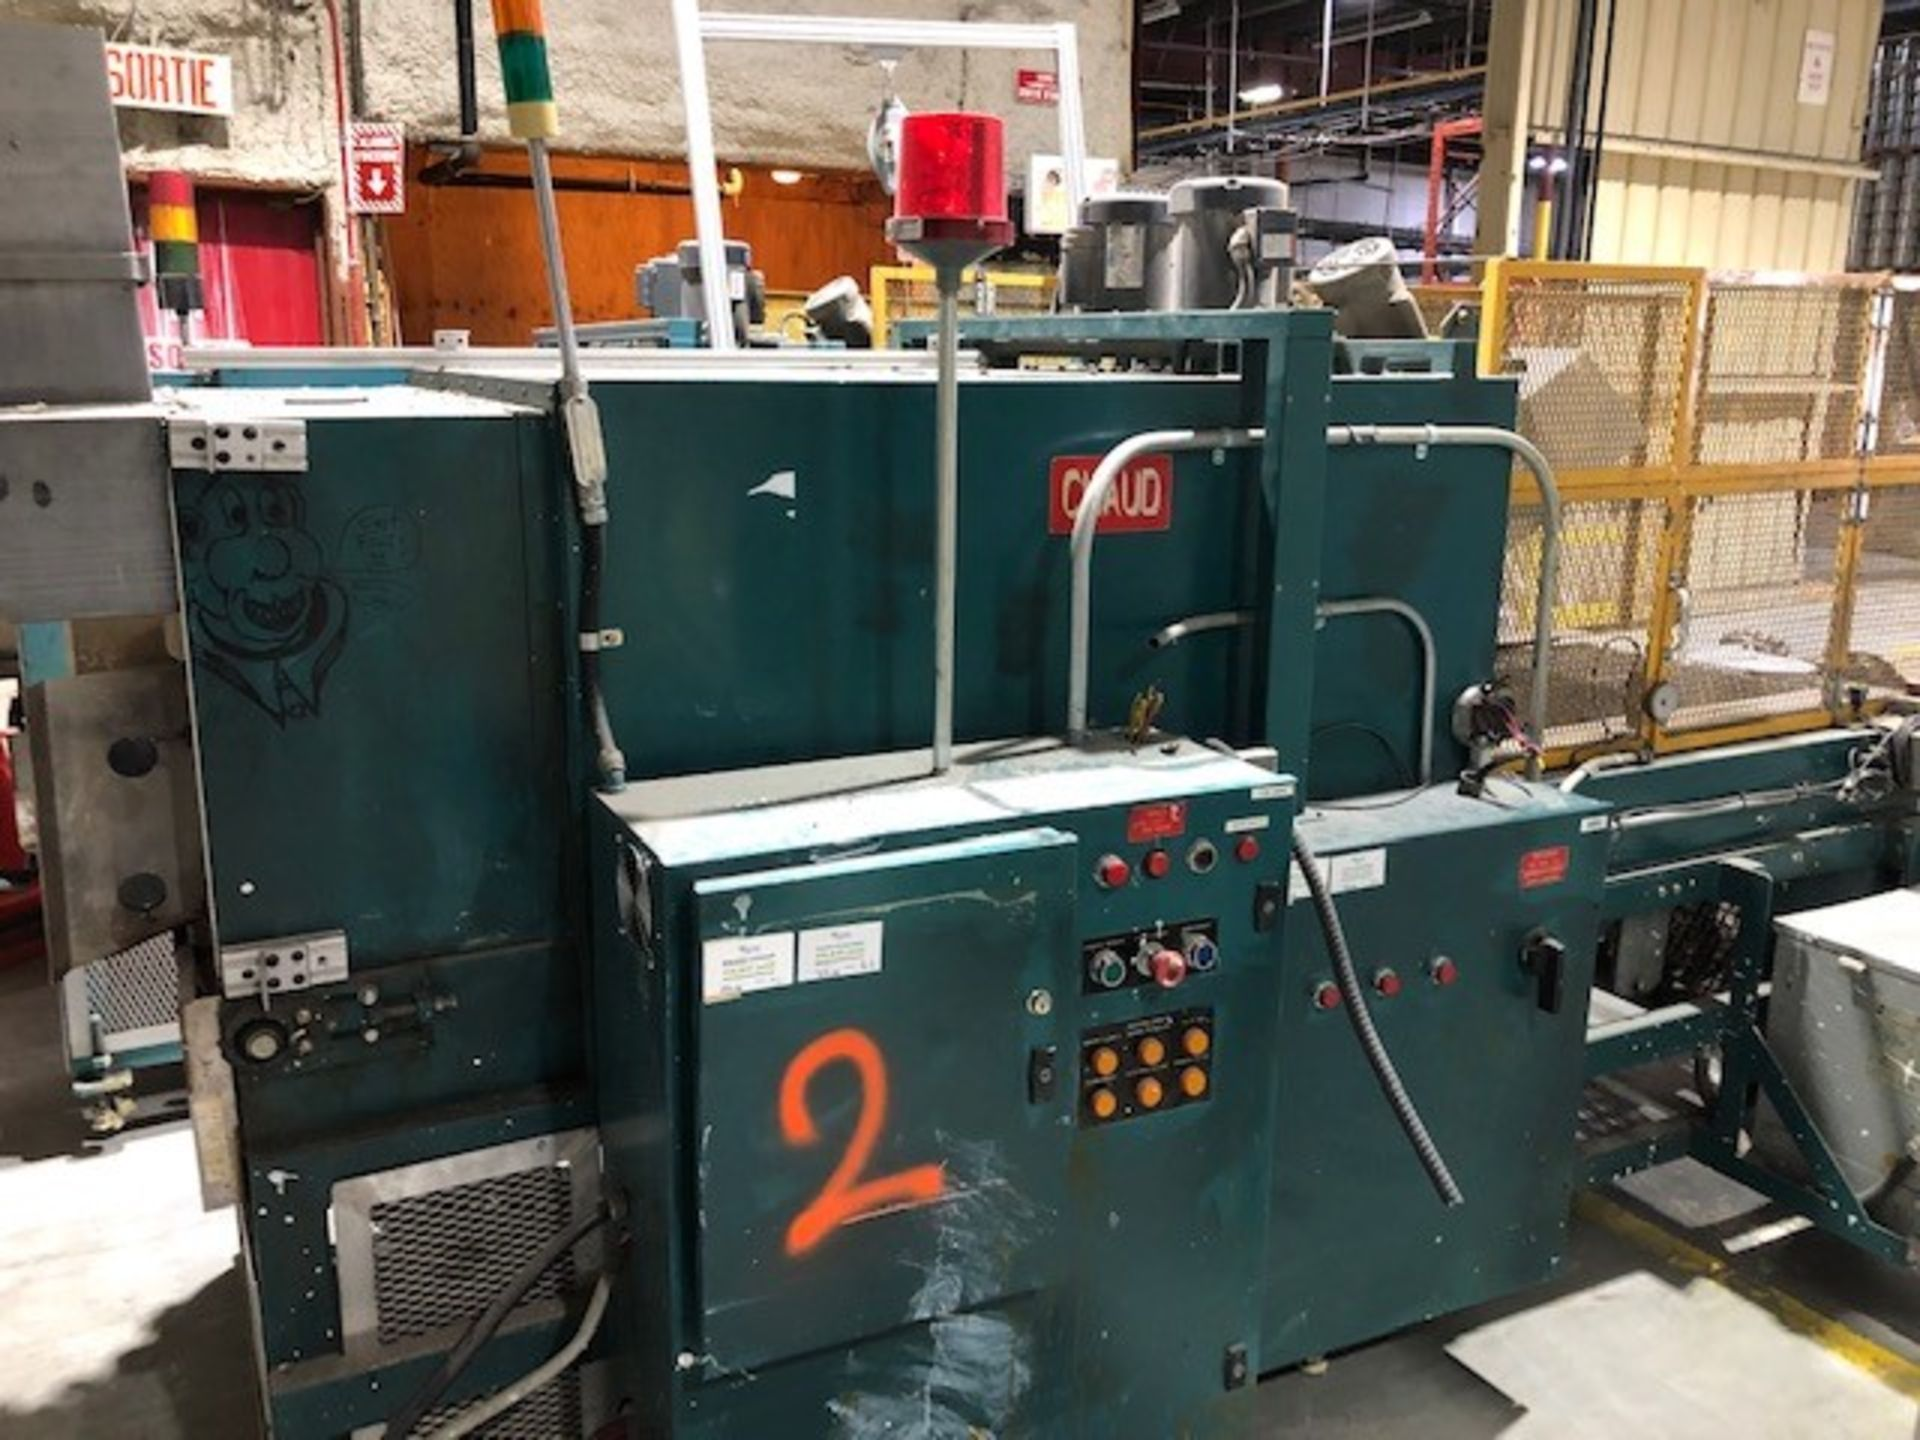 Lot 37 - Plastic shrink wrapper applicator and heating tunnel #2 Ideal Equipment, model: 1830, s/n: 1295067